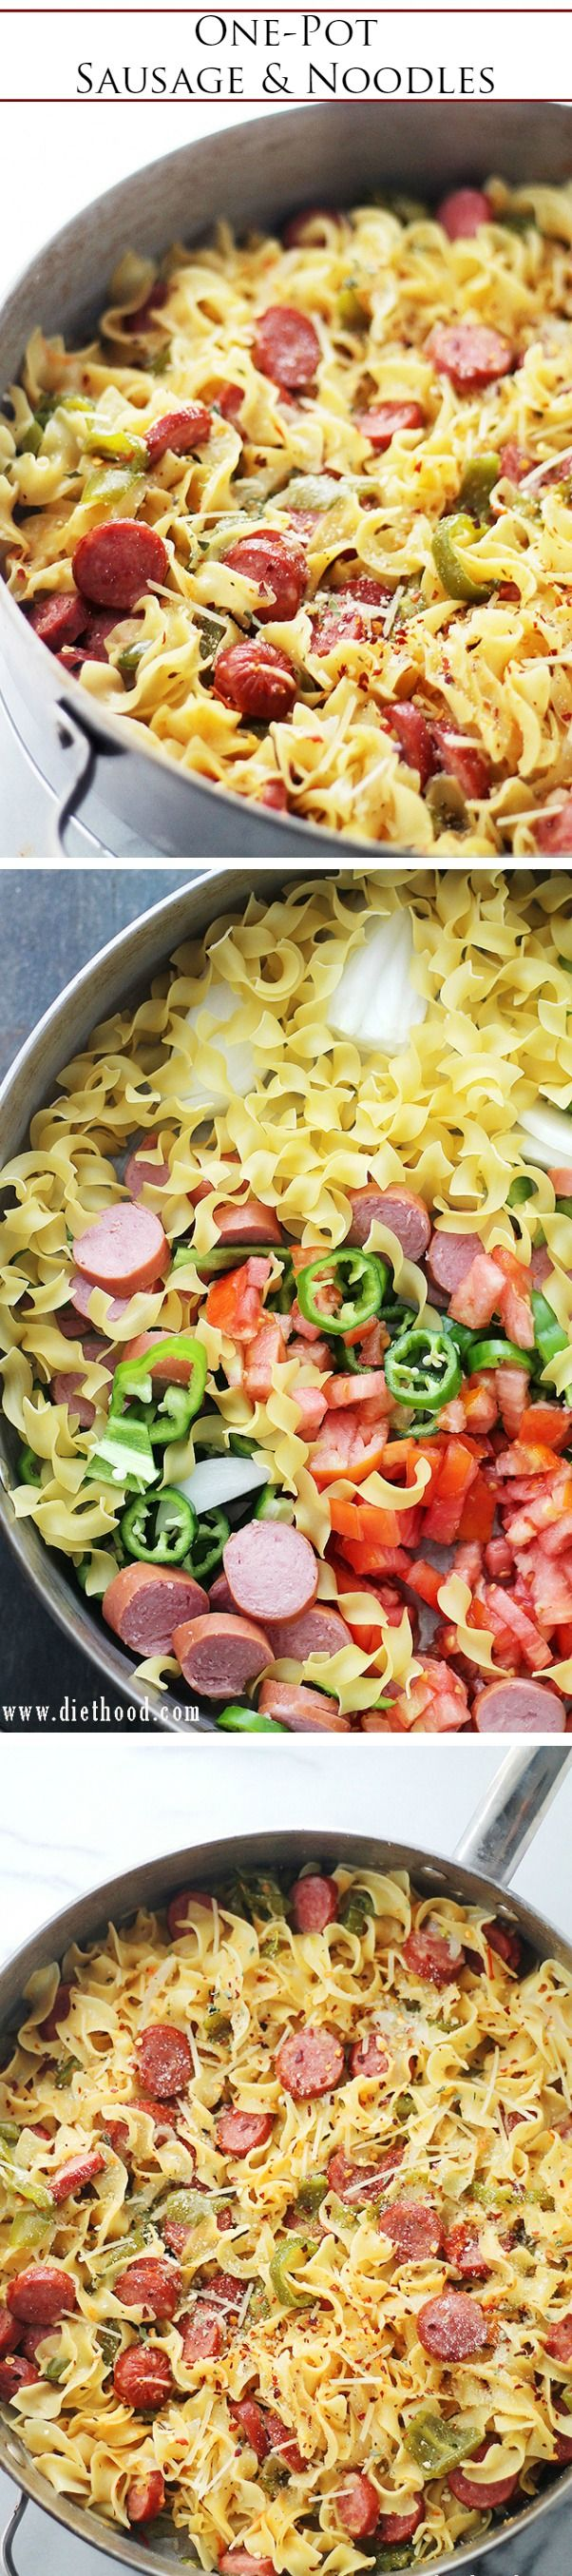 One-Pot Turkey Sausage and Noodles ~ made this 10/15/14 it was pretty good